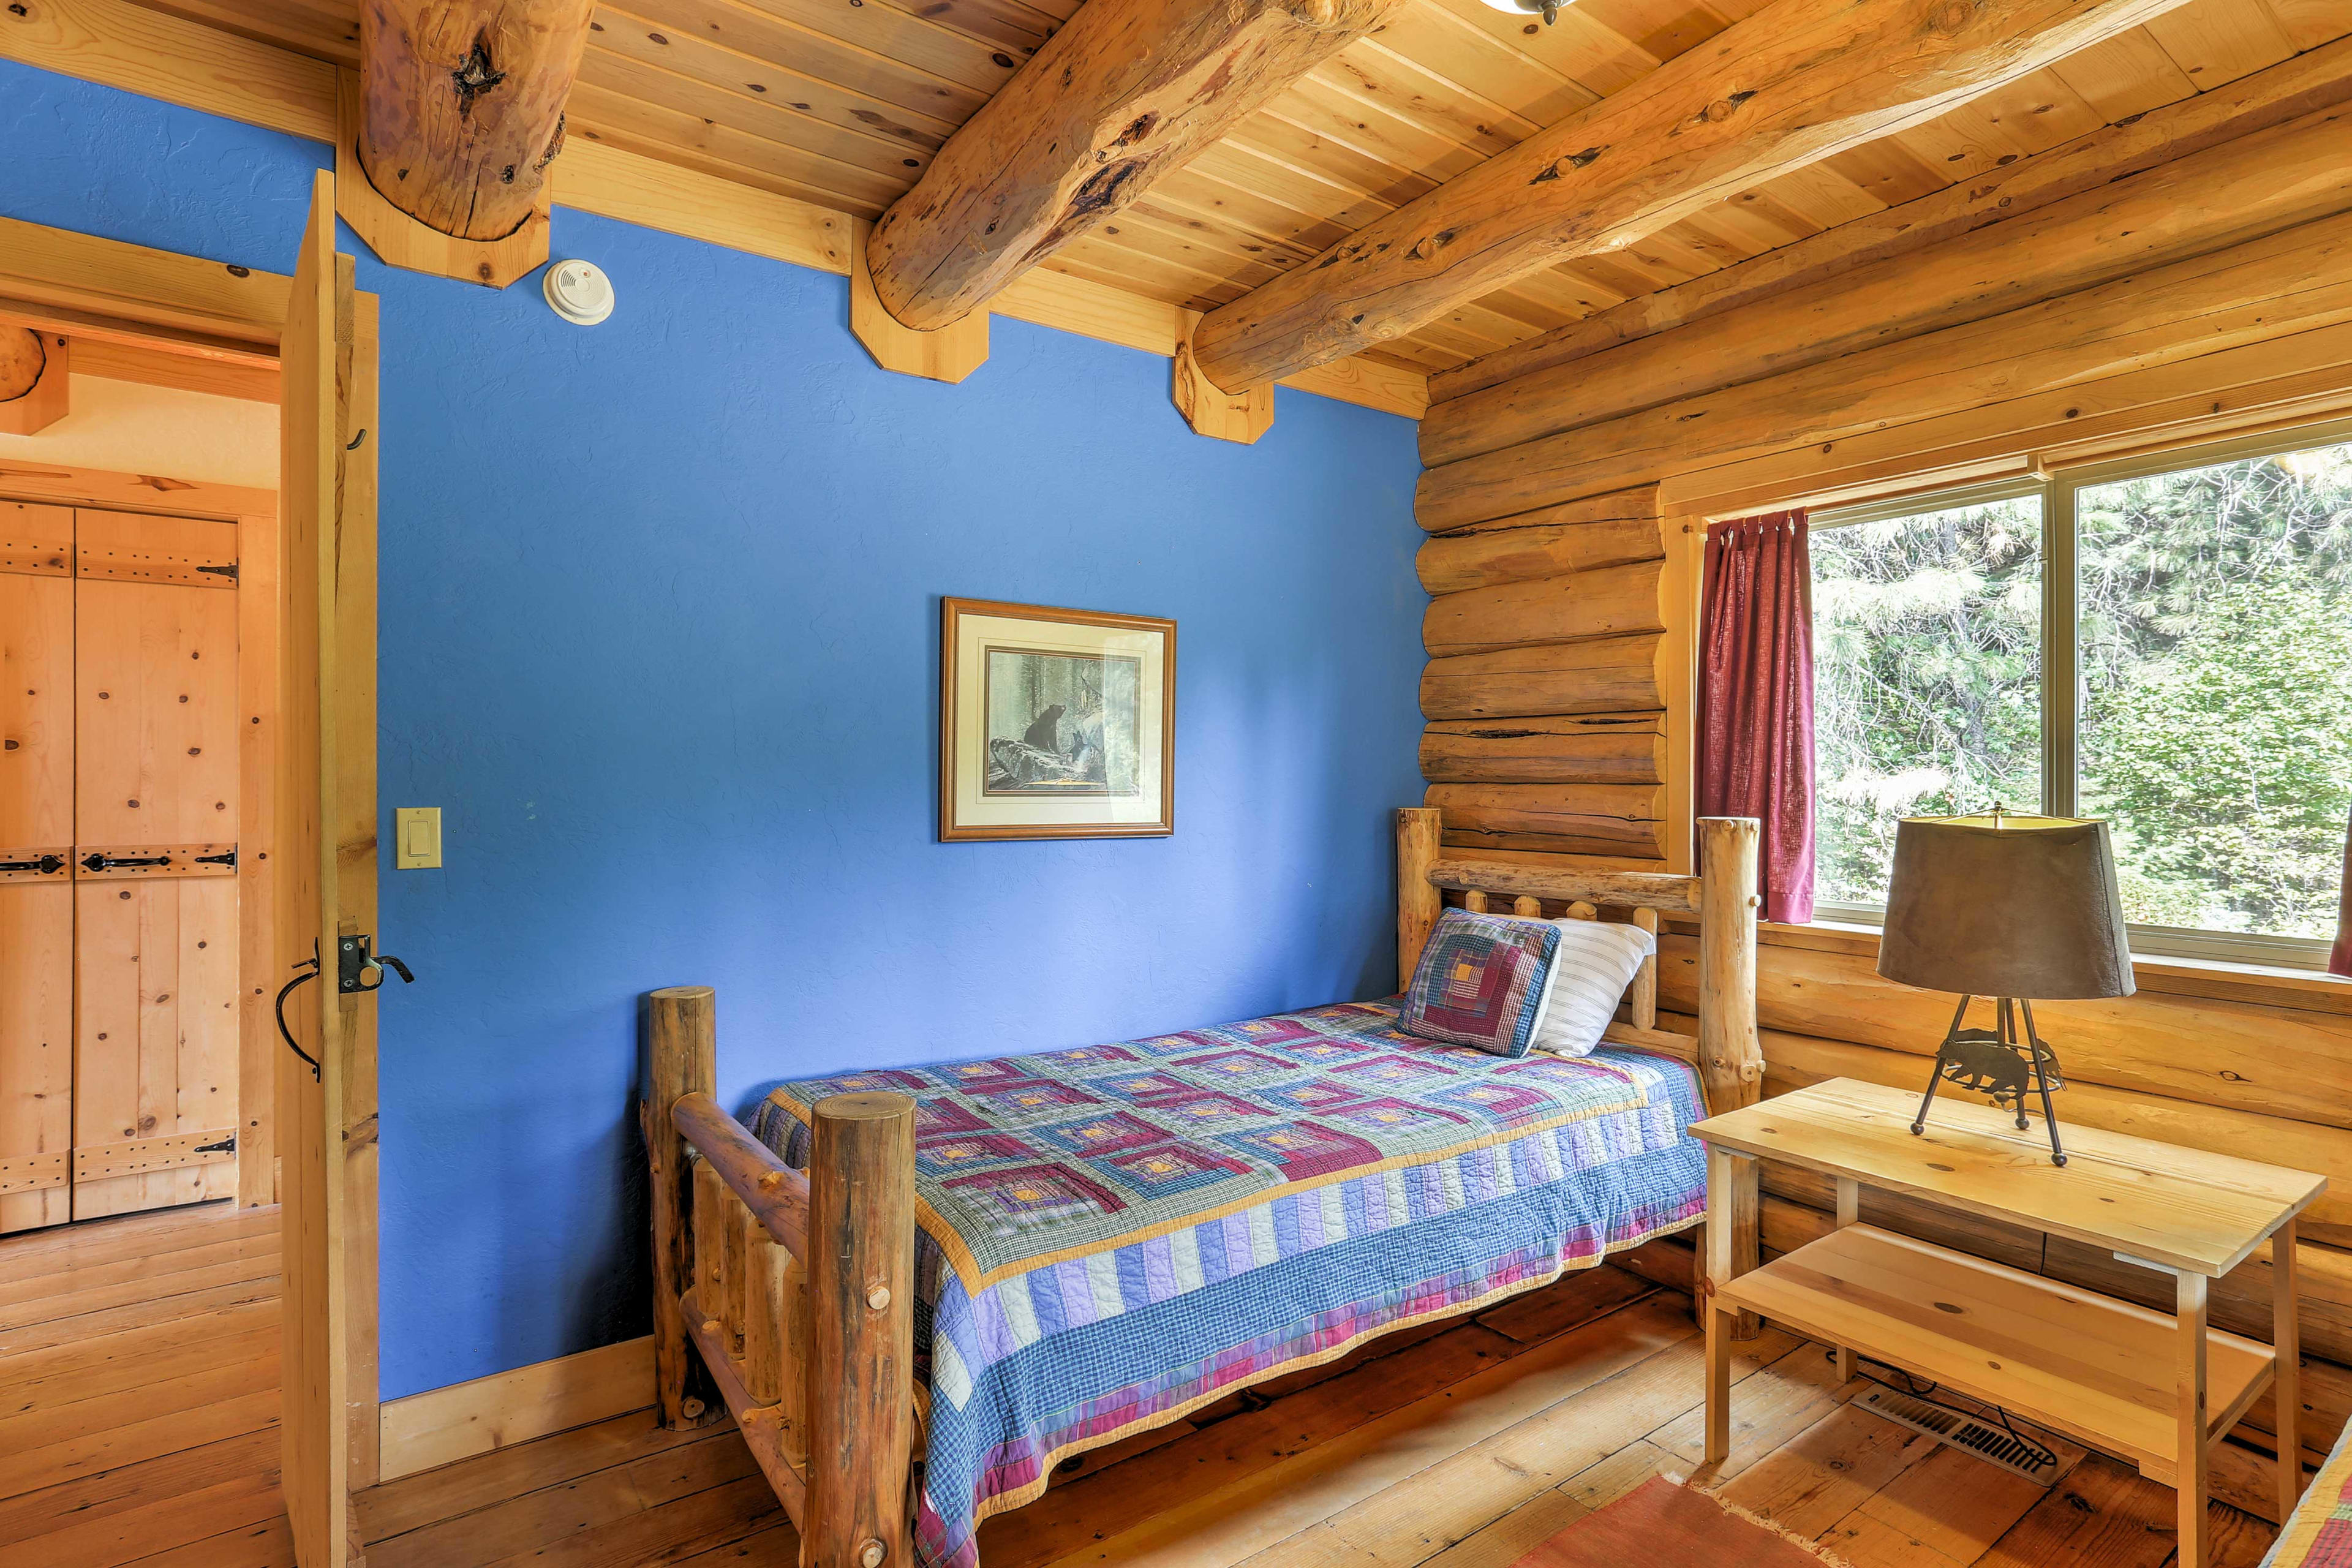 The Bear Room features 2 twin-sized beds.